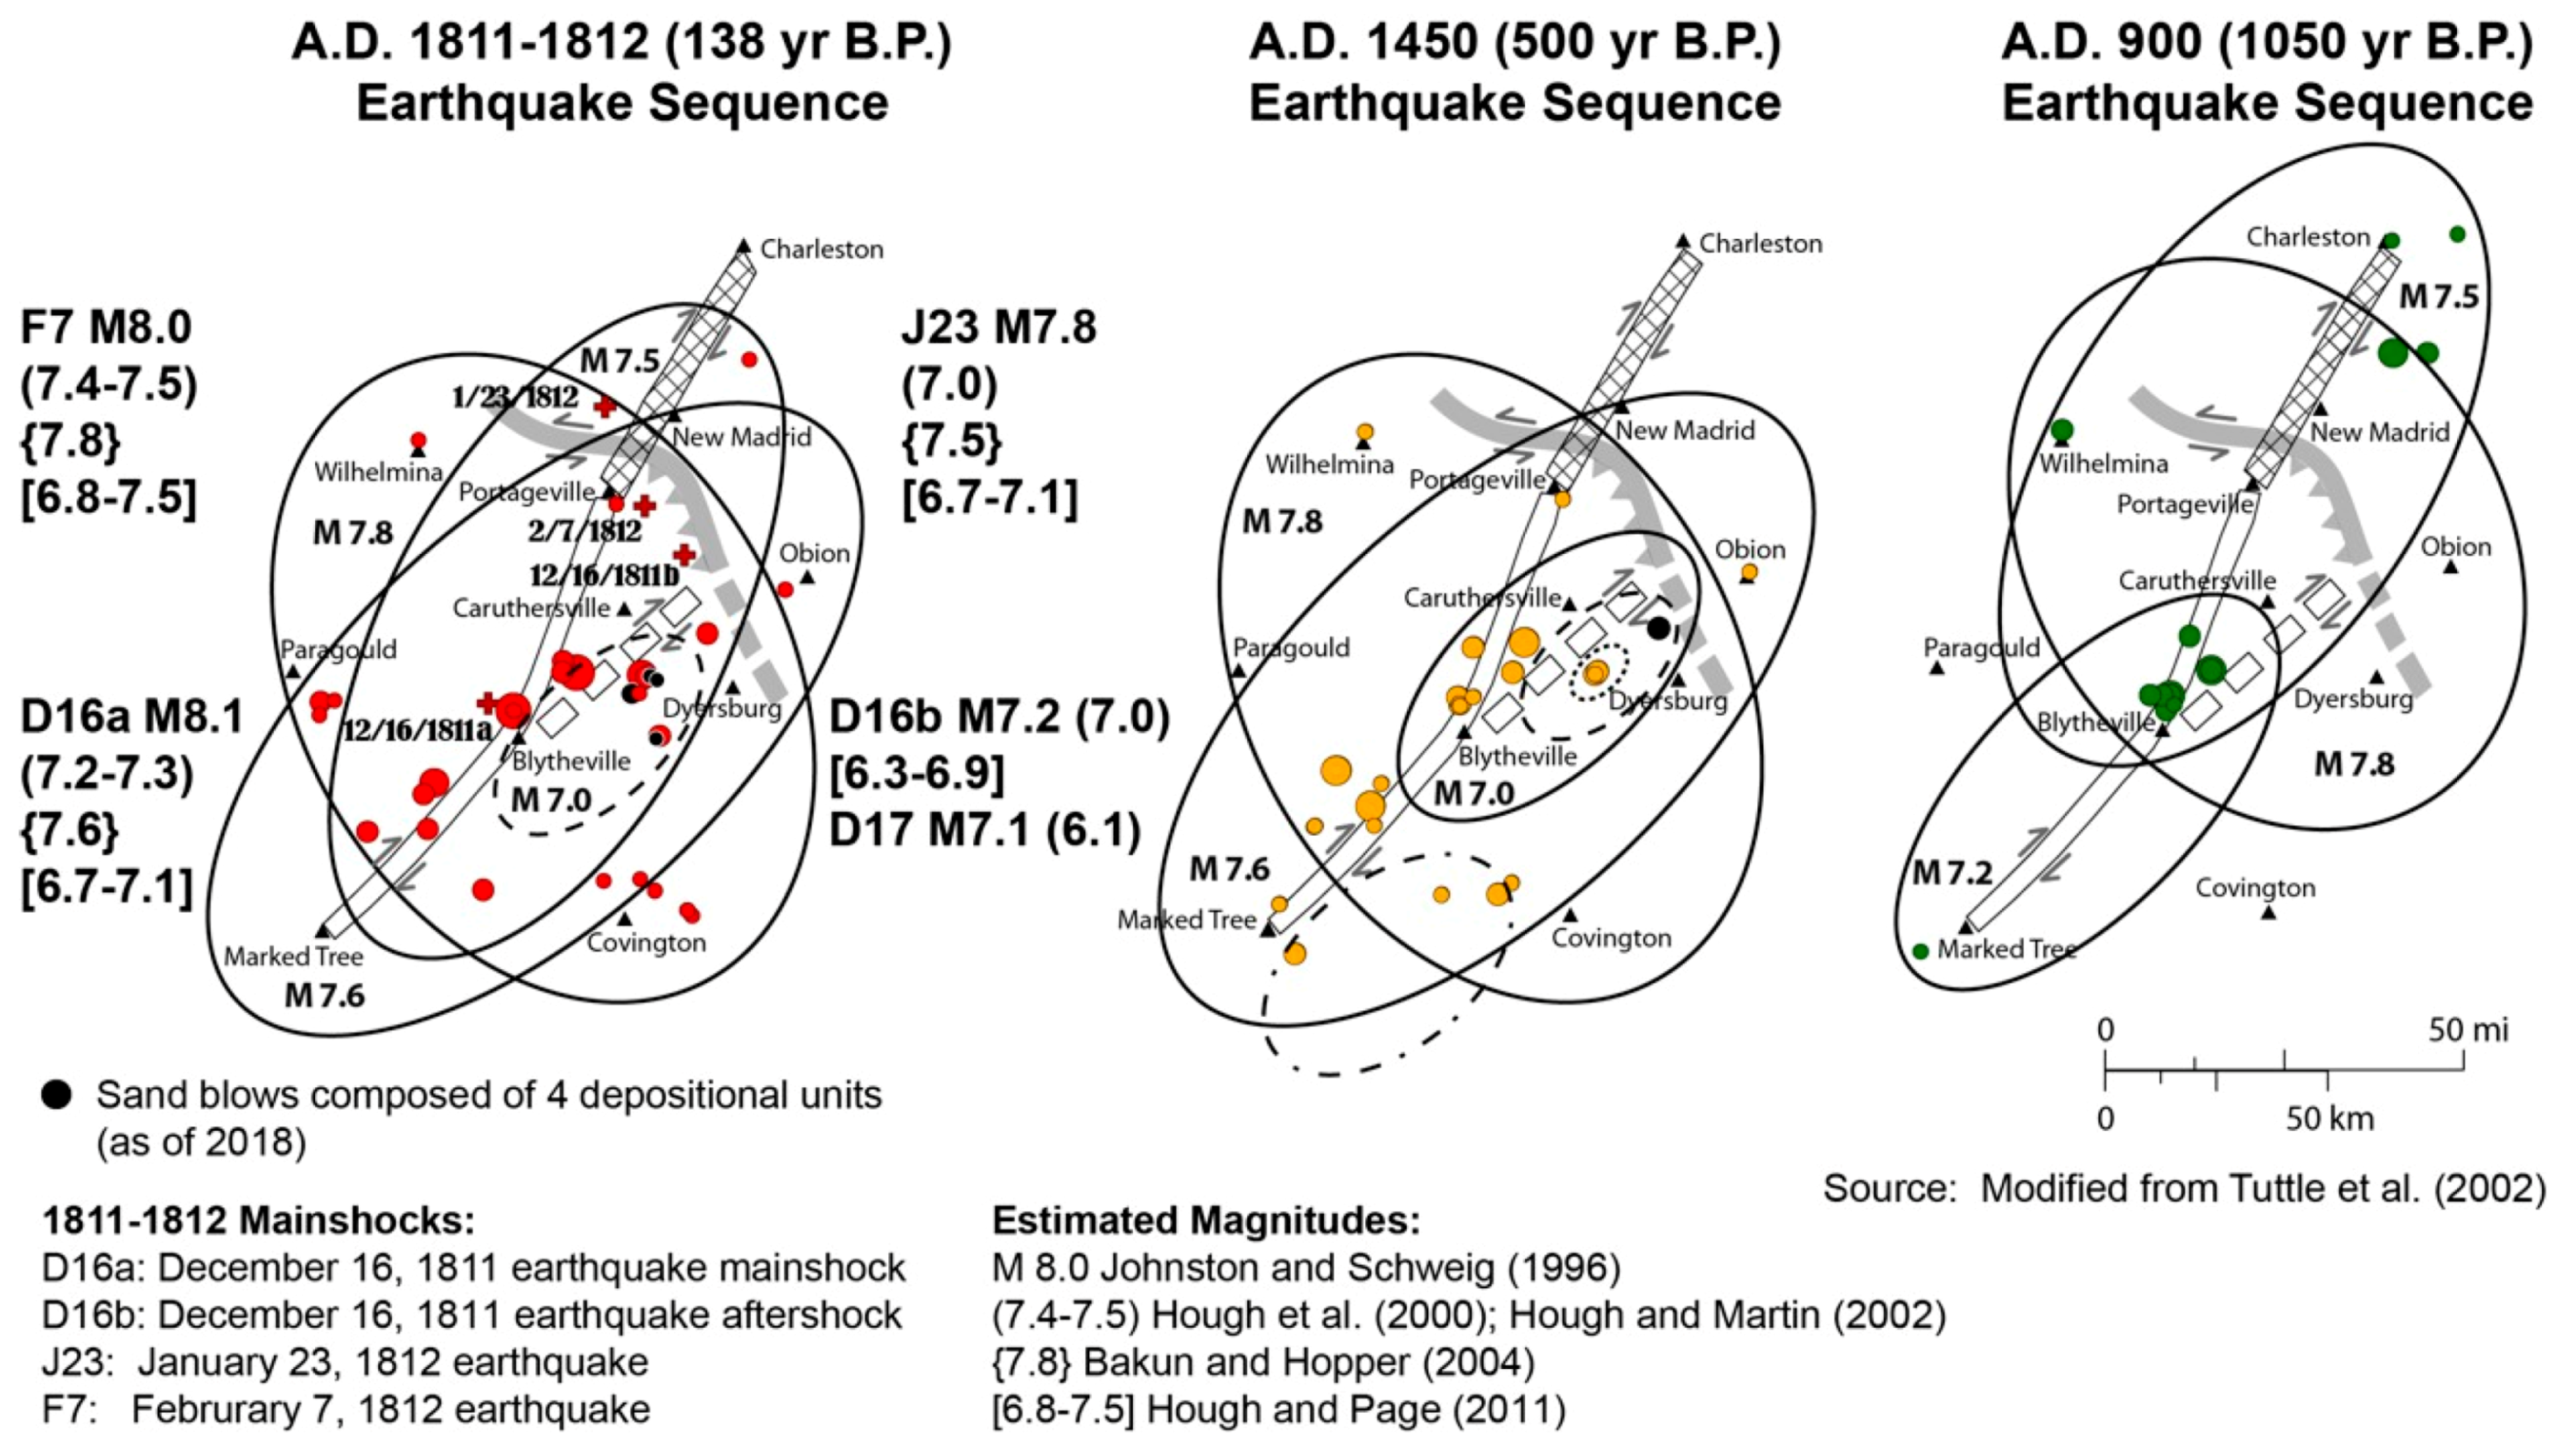 Geosciences | Free Full-Text | Paleoliquefaction Studies and